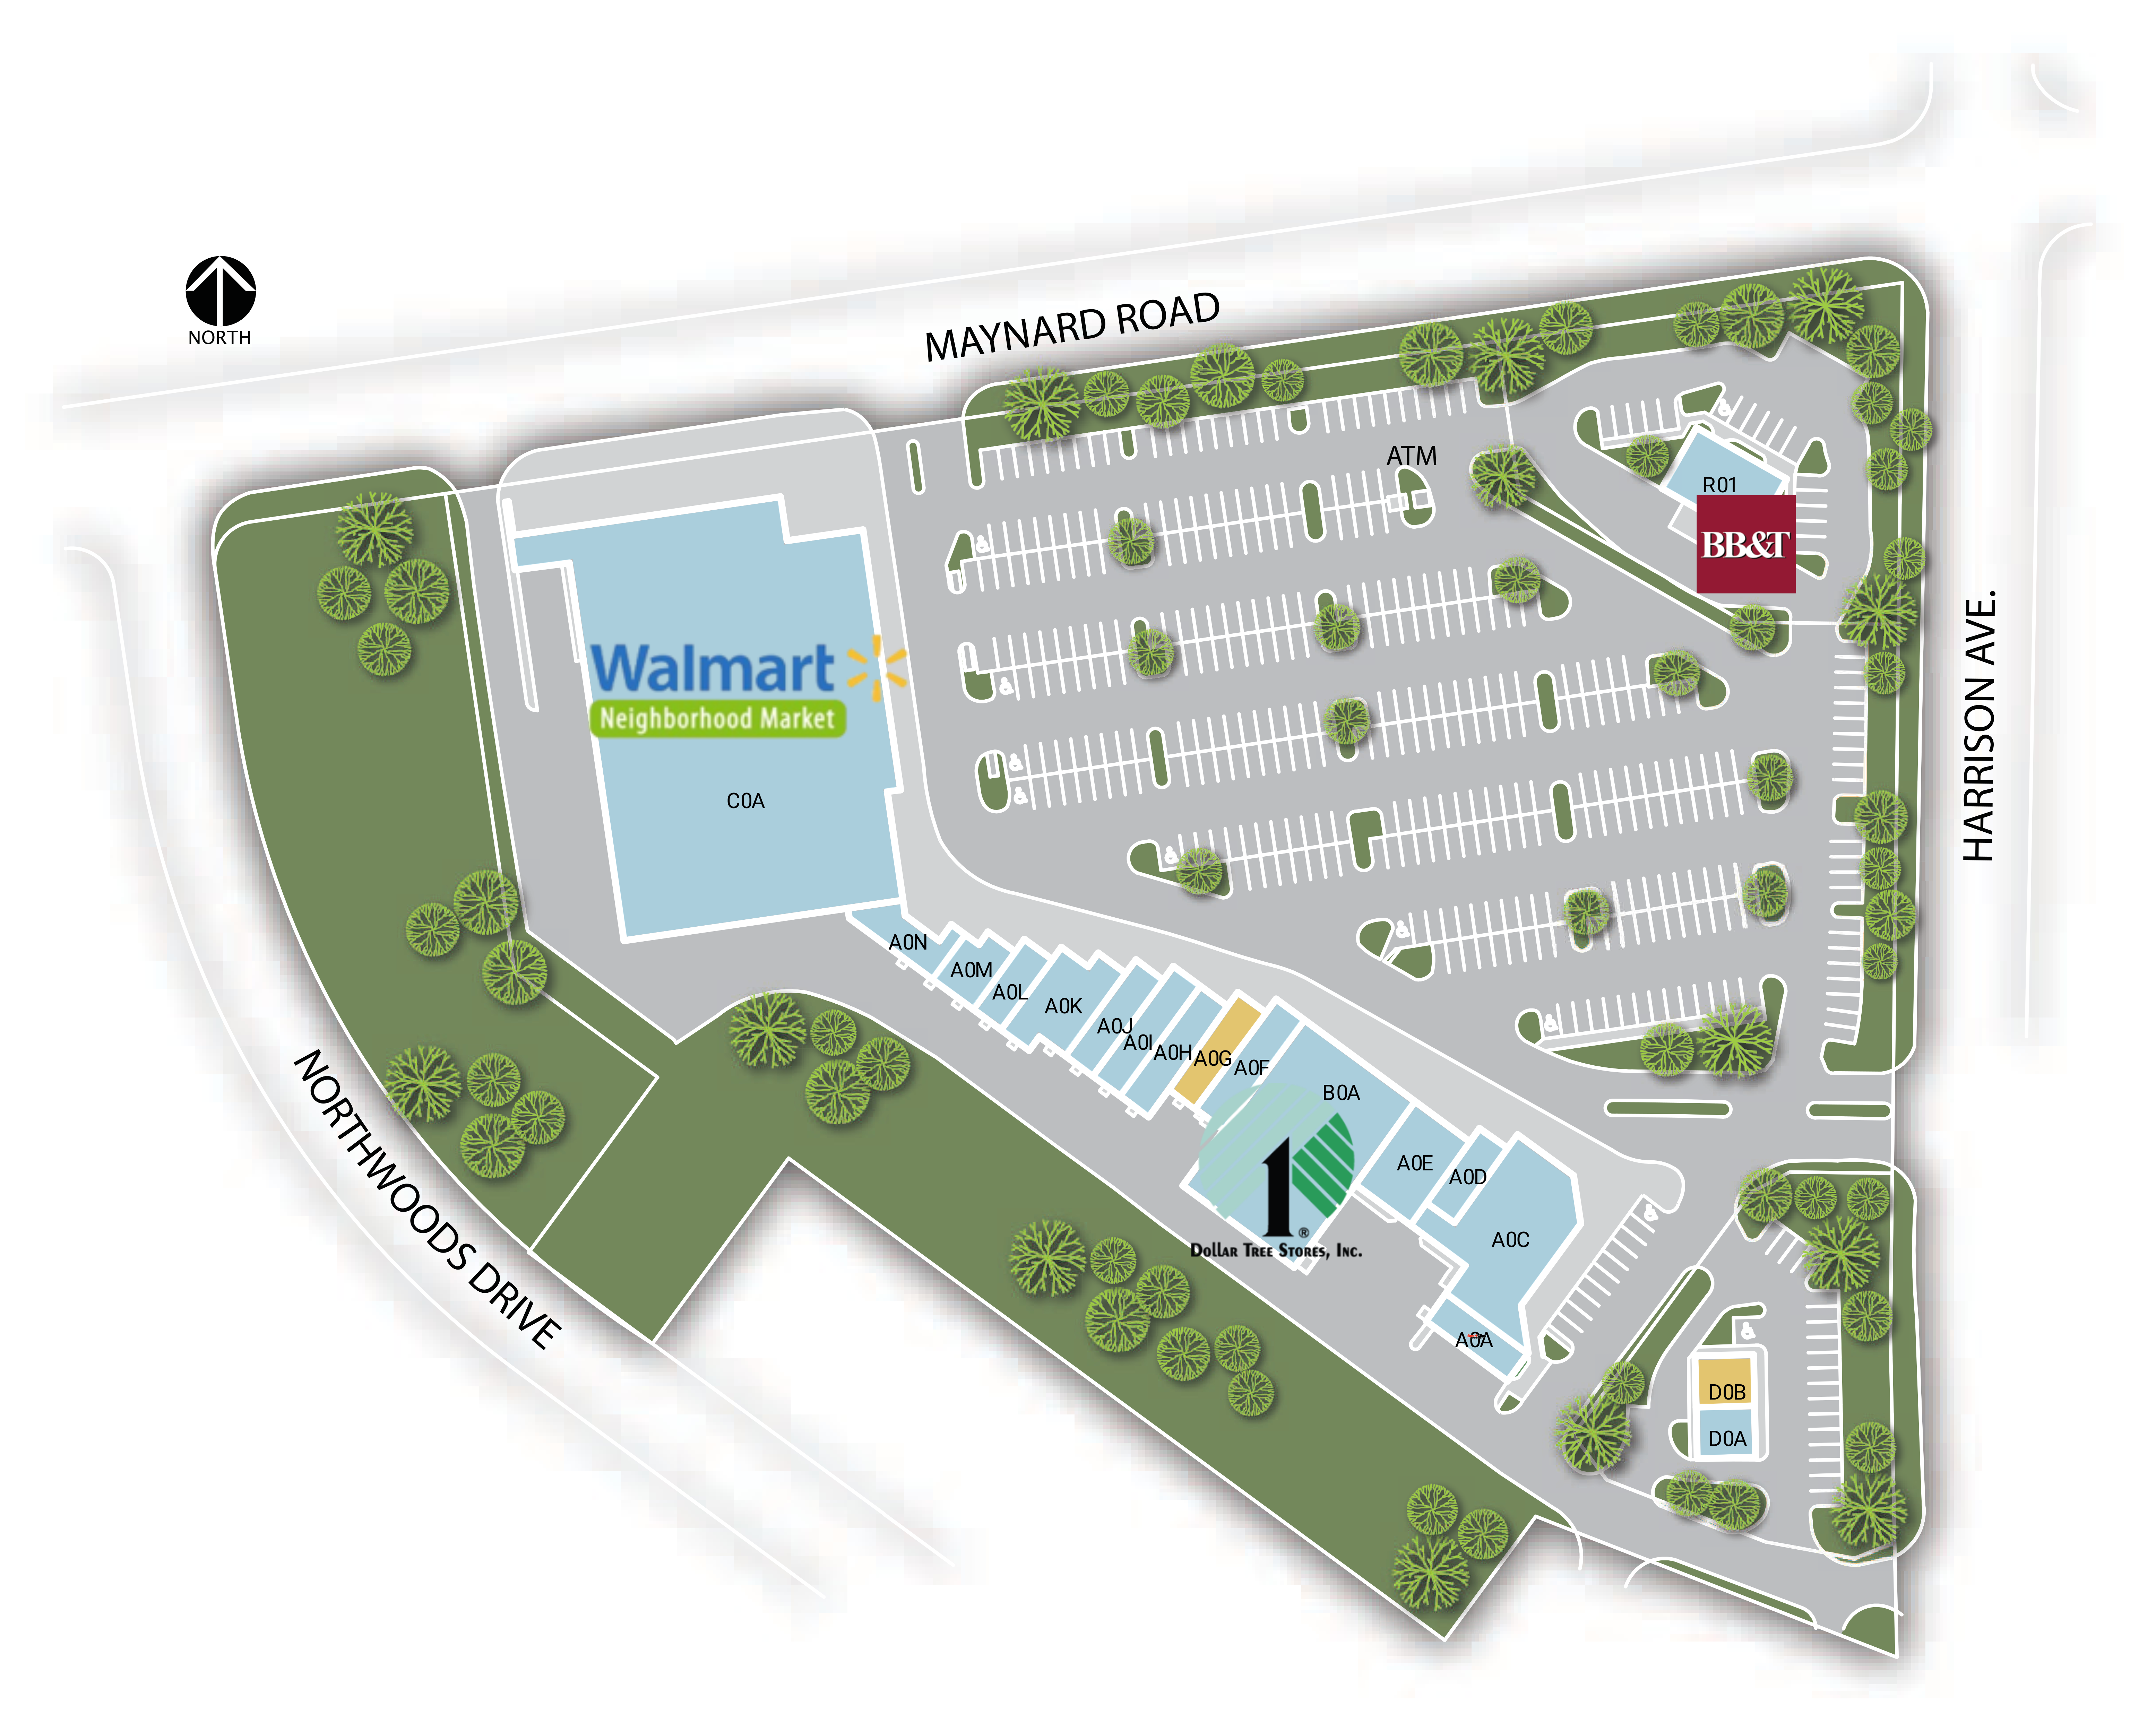 Retail Space for Lease | Cary, NC - Northwoods Shopping ... on eagle ridge mall map, crystal mall map, concord mall map, biltmore square mall map, eastpoint mall map, carolina mall map, georgia mall map, inlet square mall map, lexington mall map, oakwood mall map, the florida mall map, bowling green mall map, rolling oaks mall map, town east mall map, stroud mall map, green tree mall map, north east mall map, exton square mall map, rivertown mall map, tanglewood mall map,